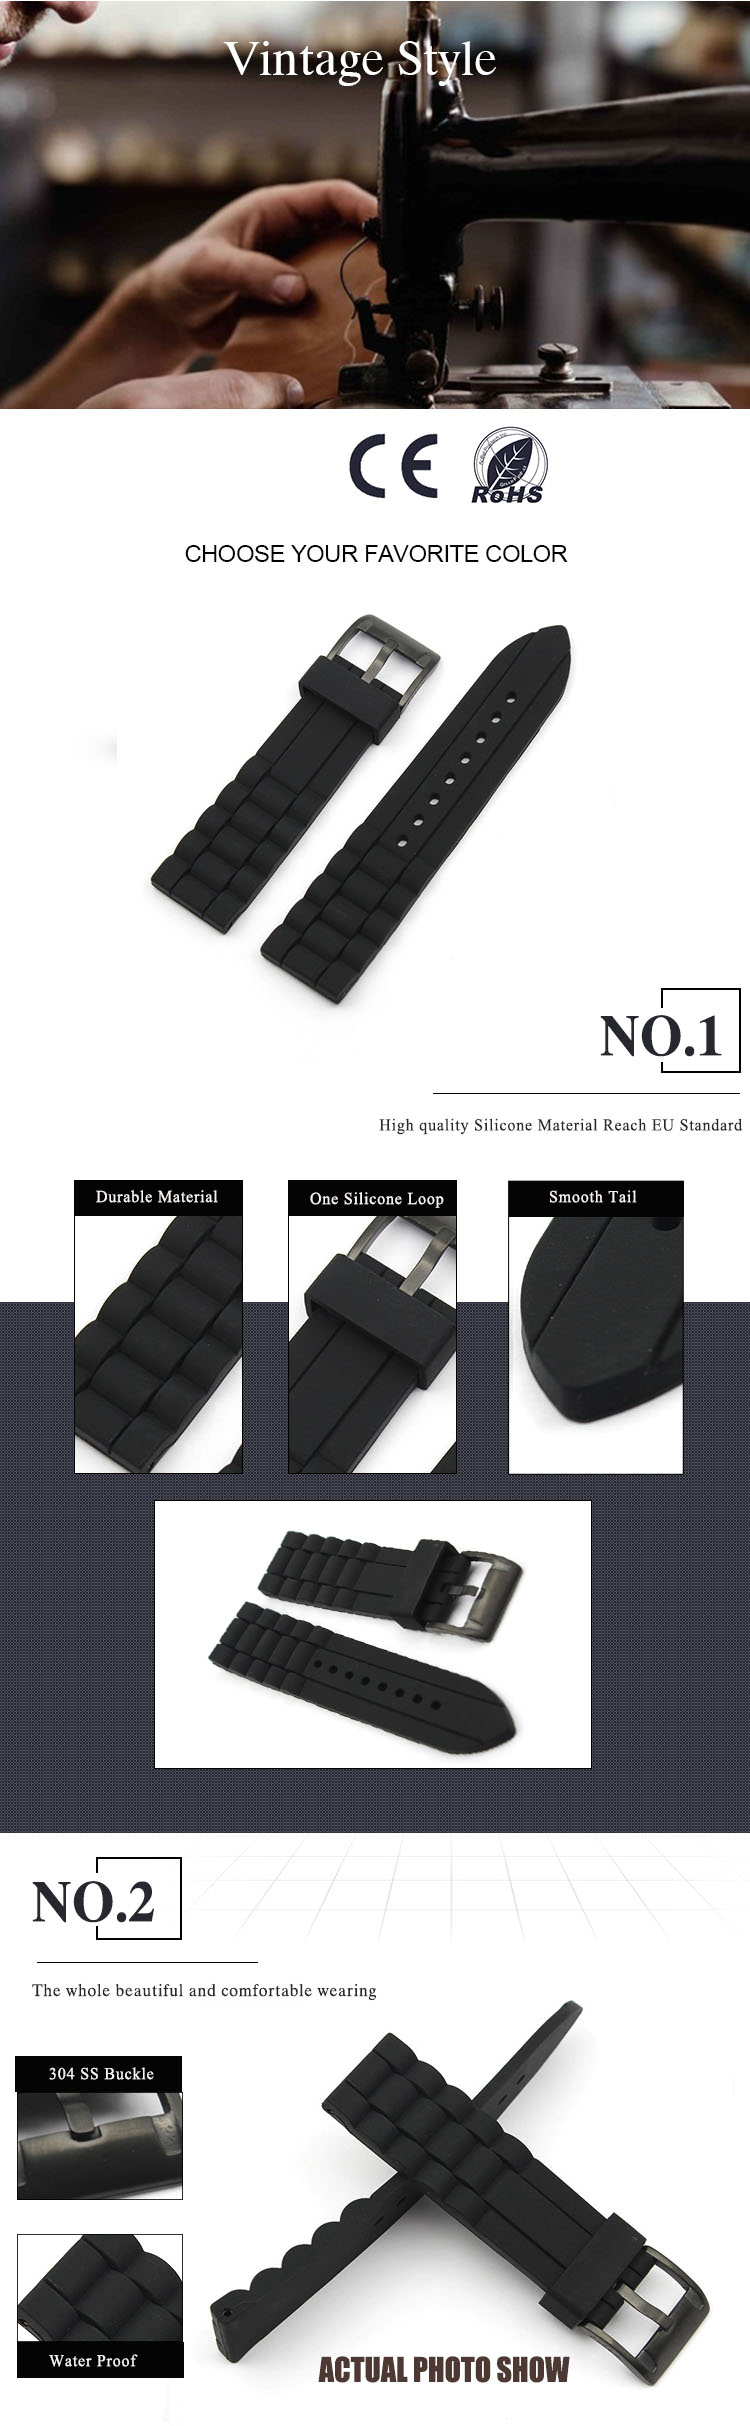 Black Military Silicone Watch Band Manufacturer PVD black Buckle